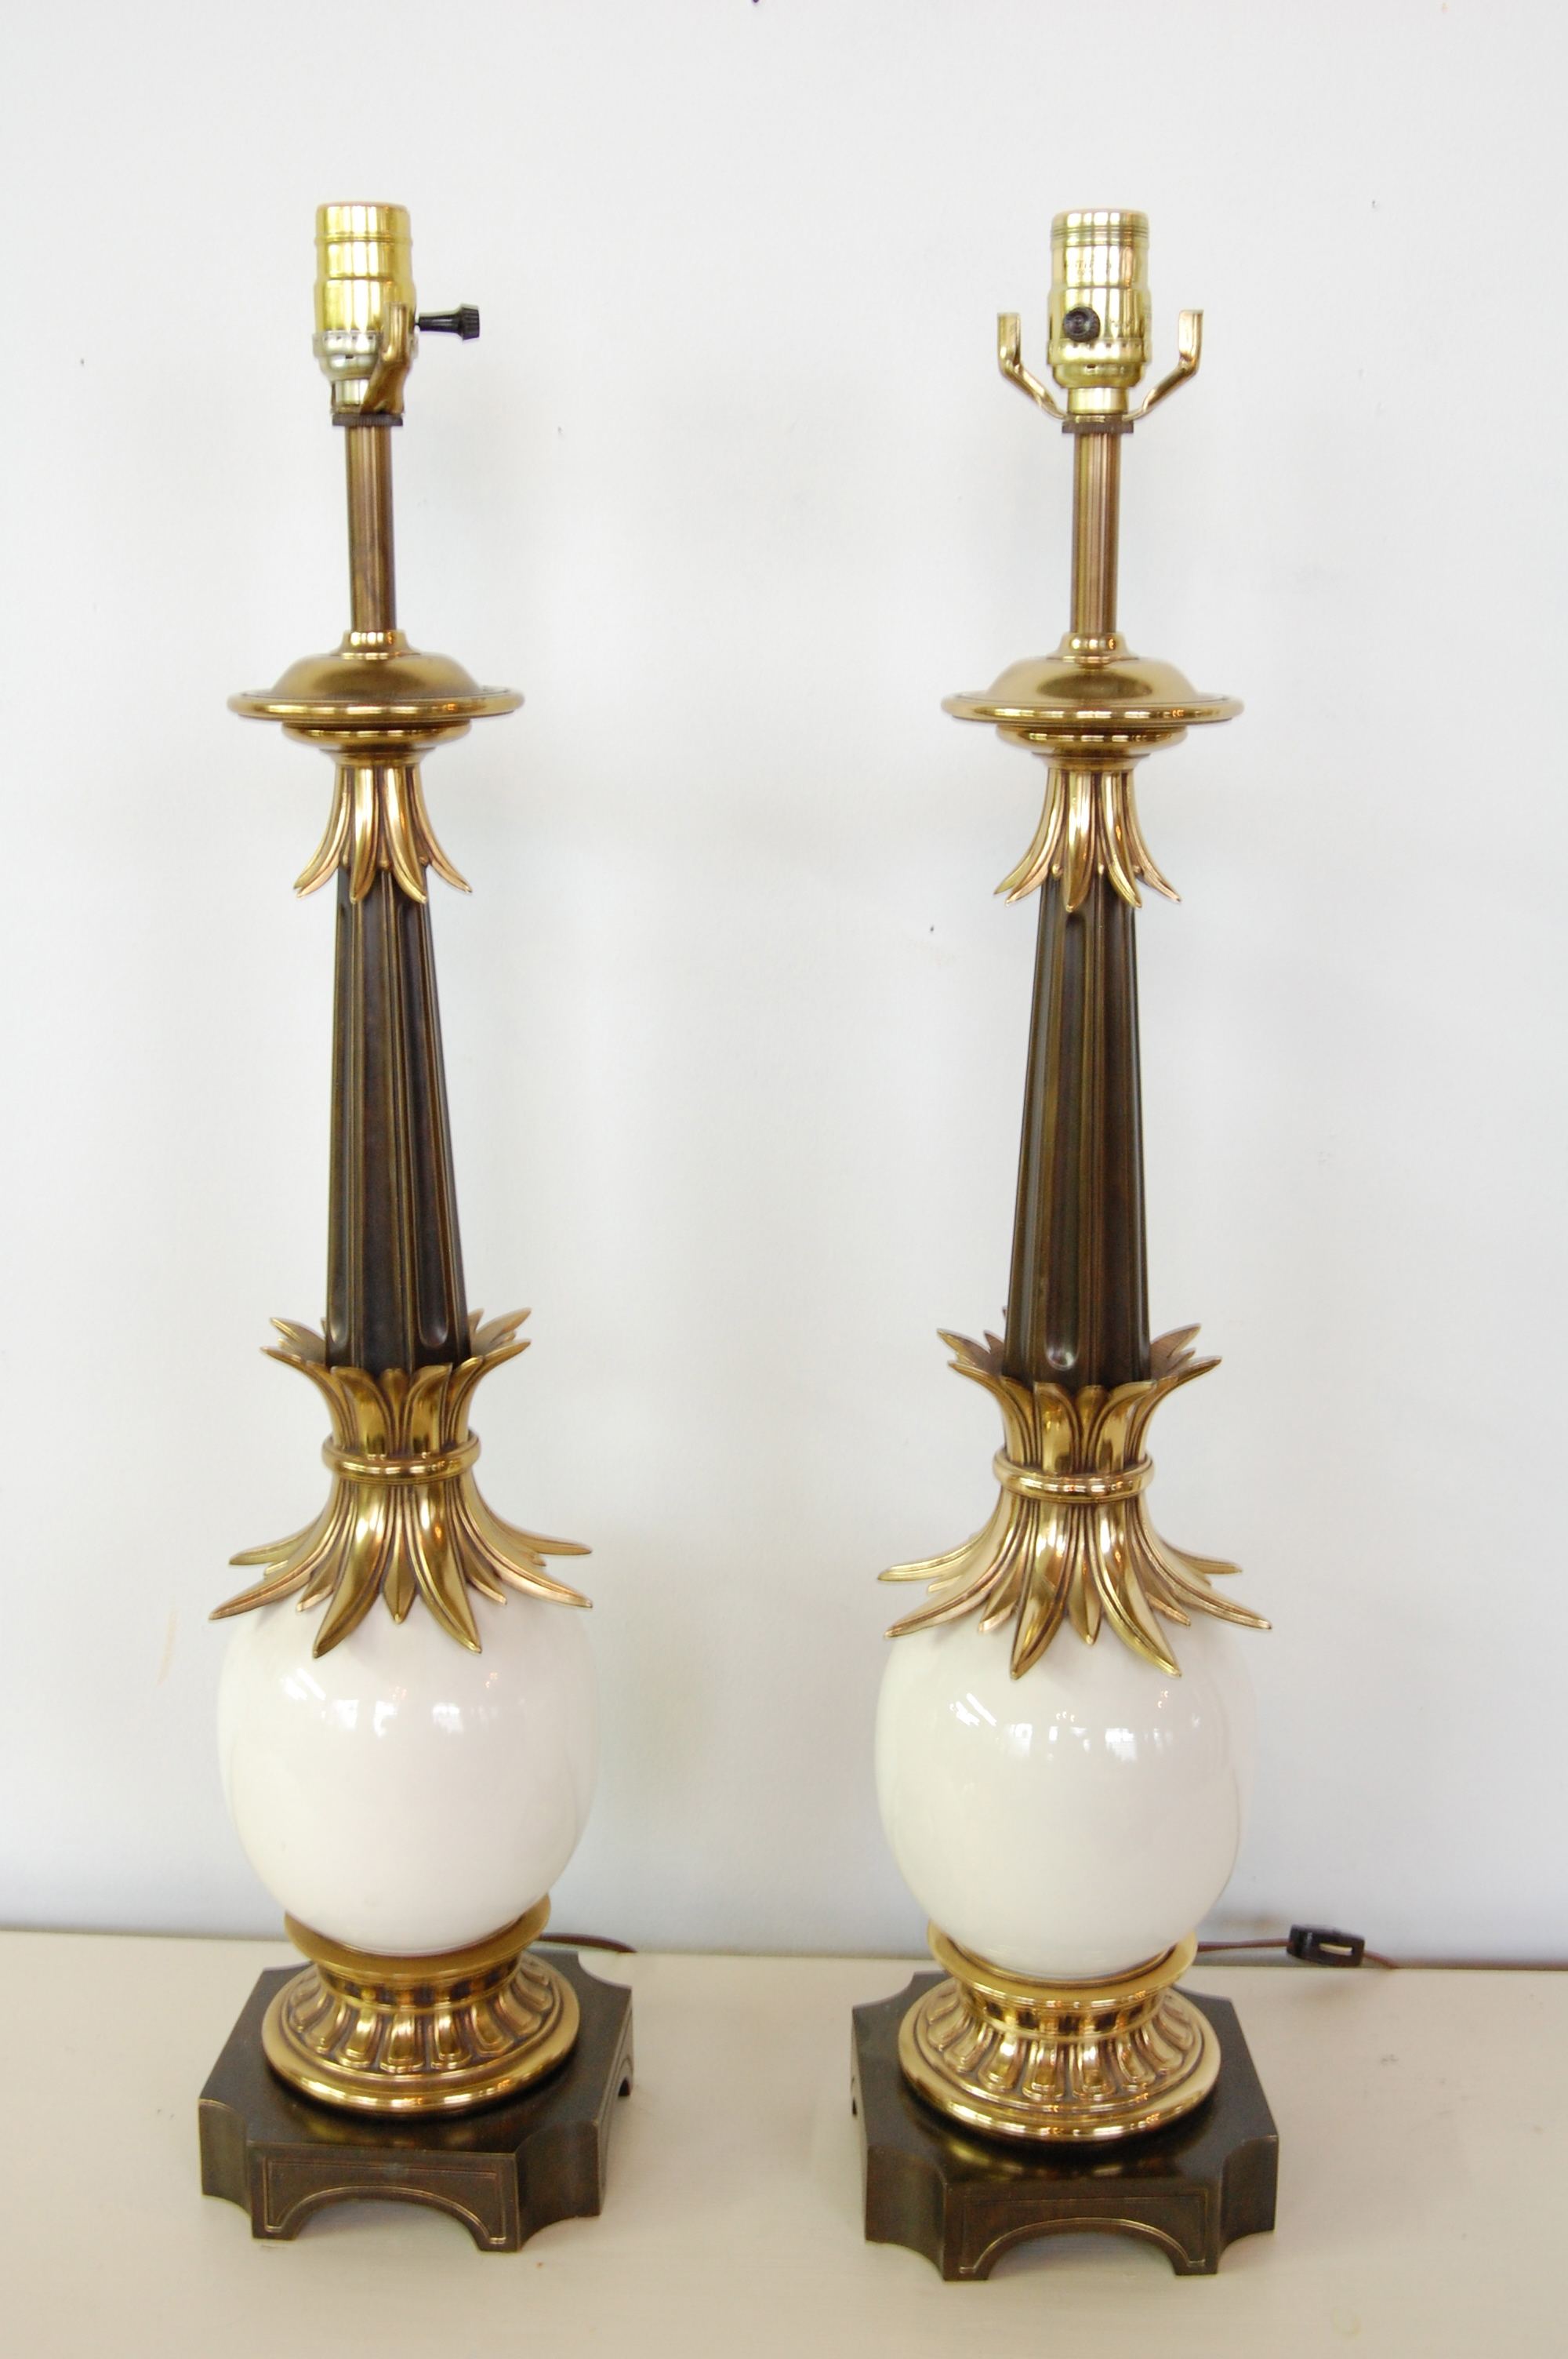 Hollywood Regency Ostrich Egg Lamps By Stiffel Pair The